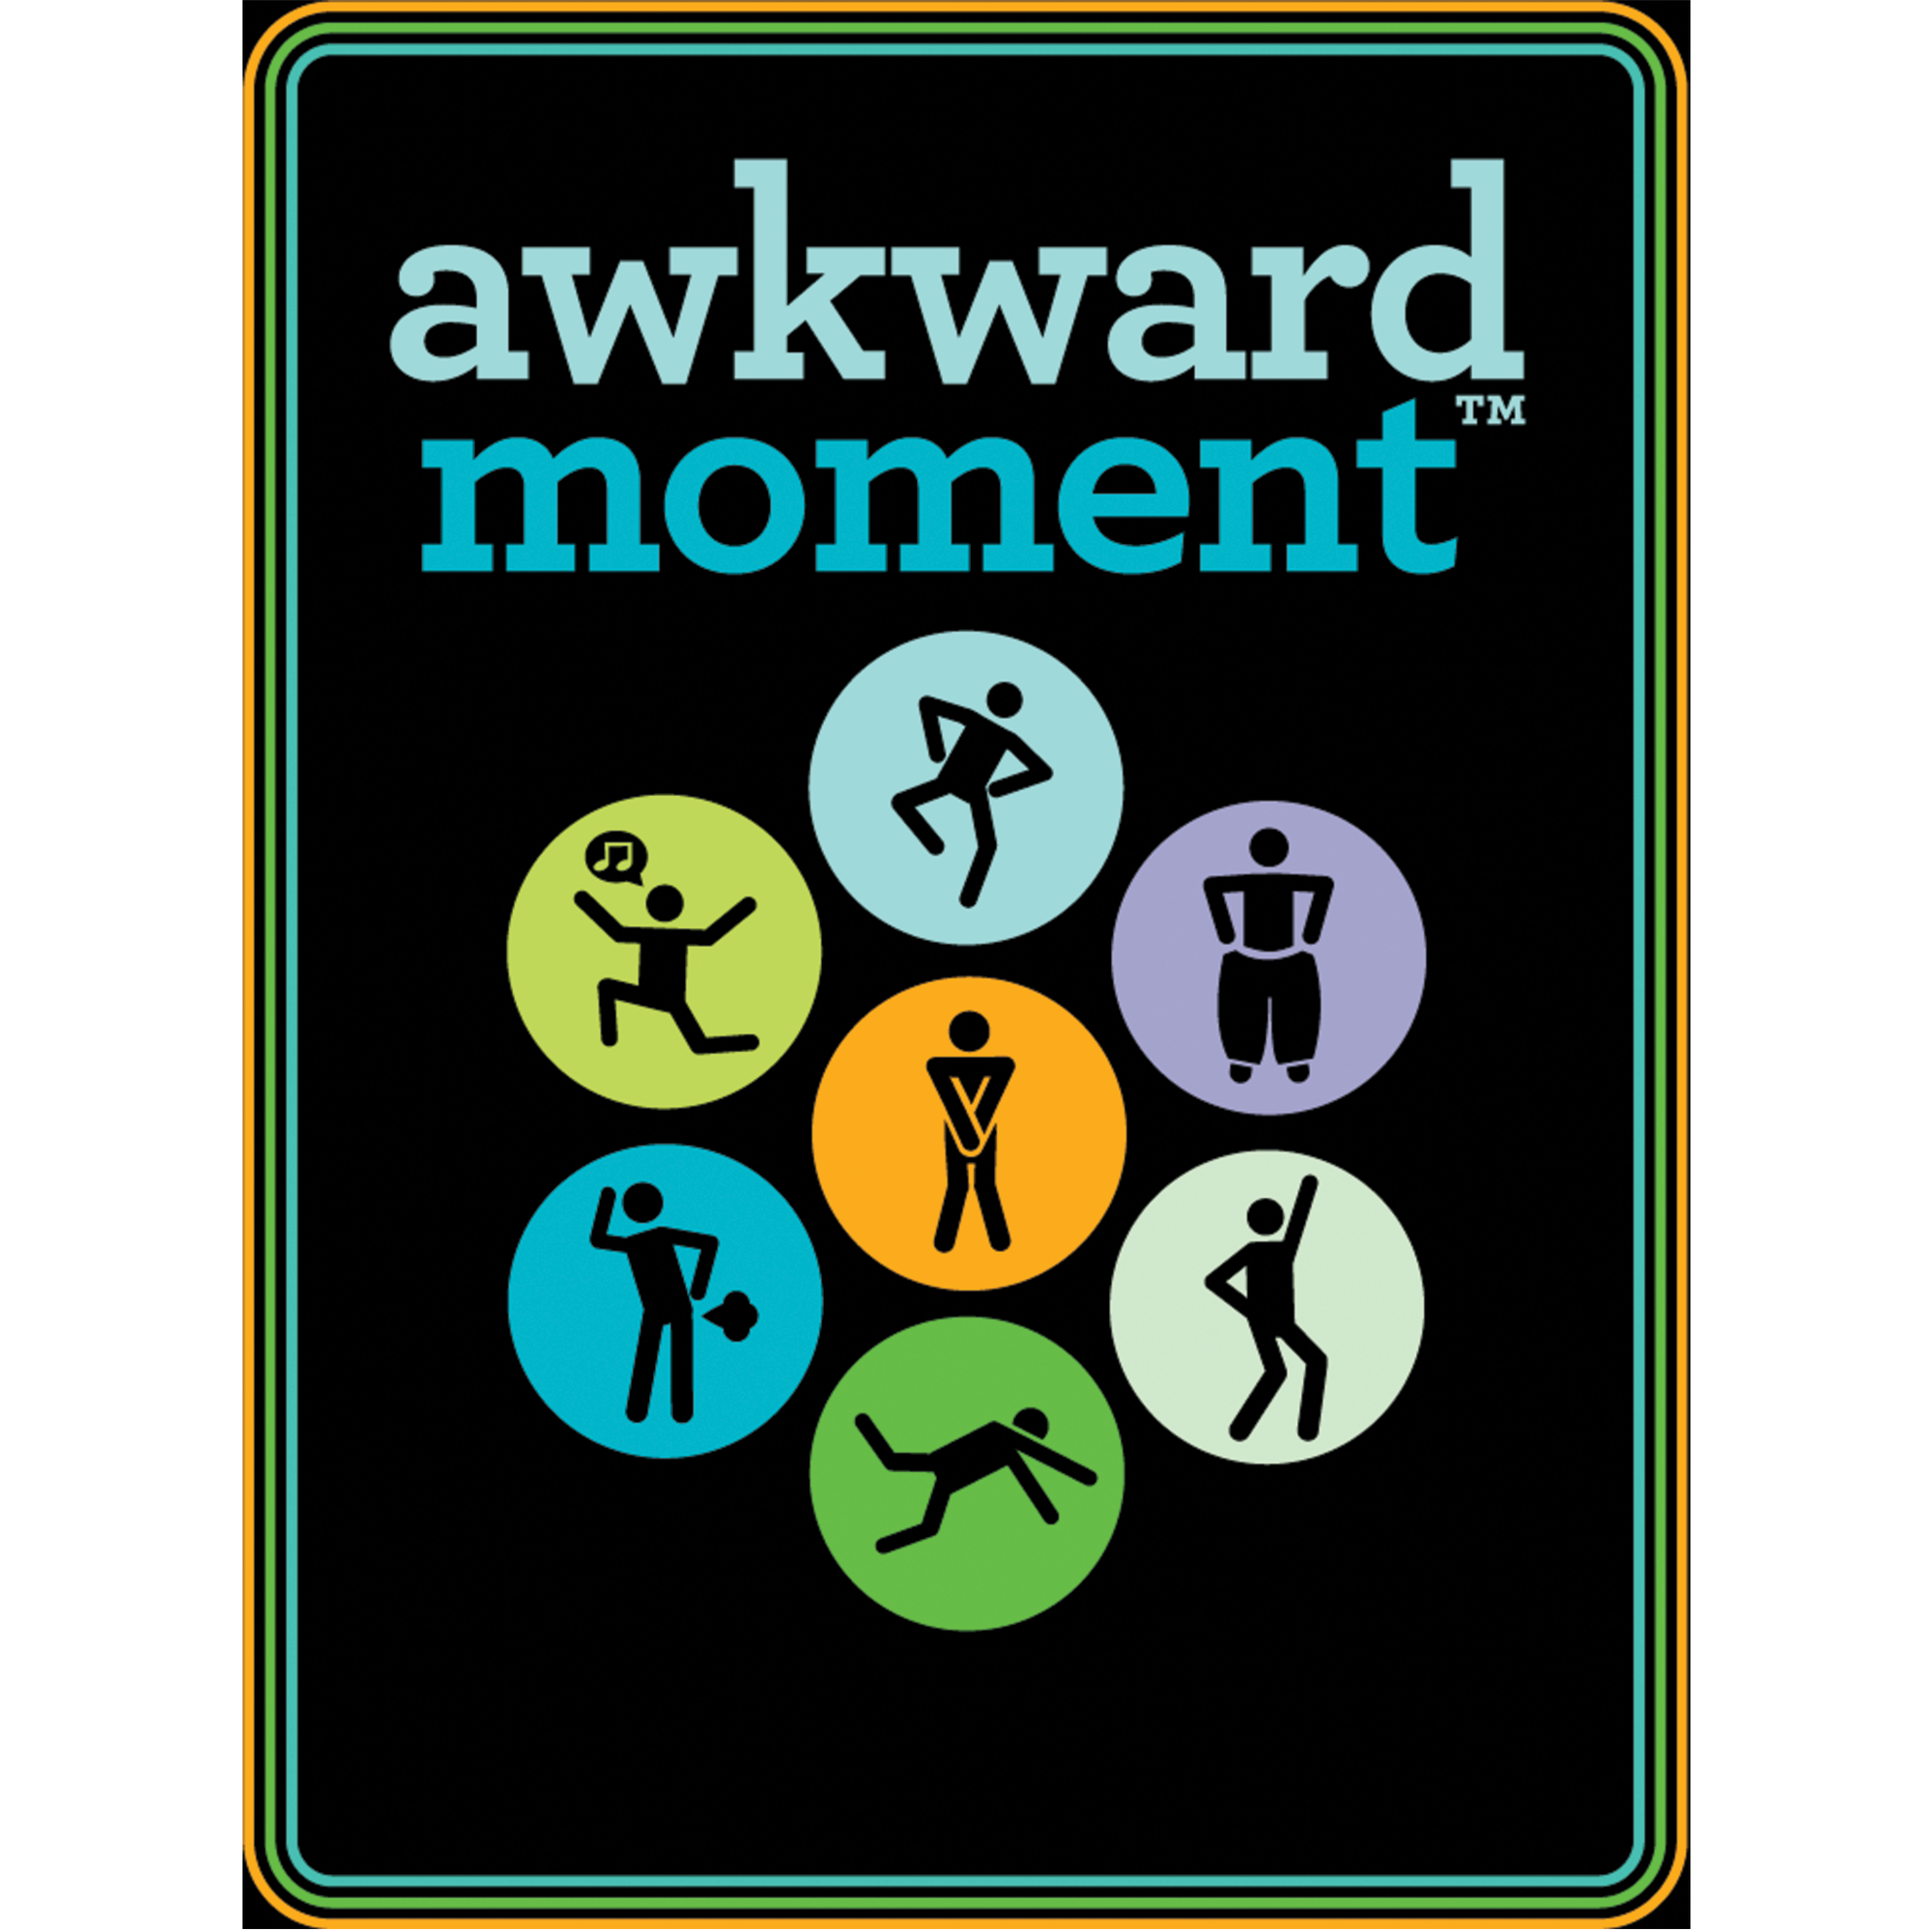 Awkward Moment at Work party card game - Game box